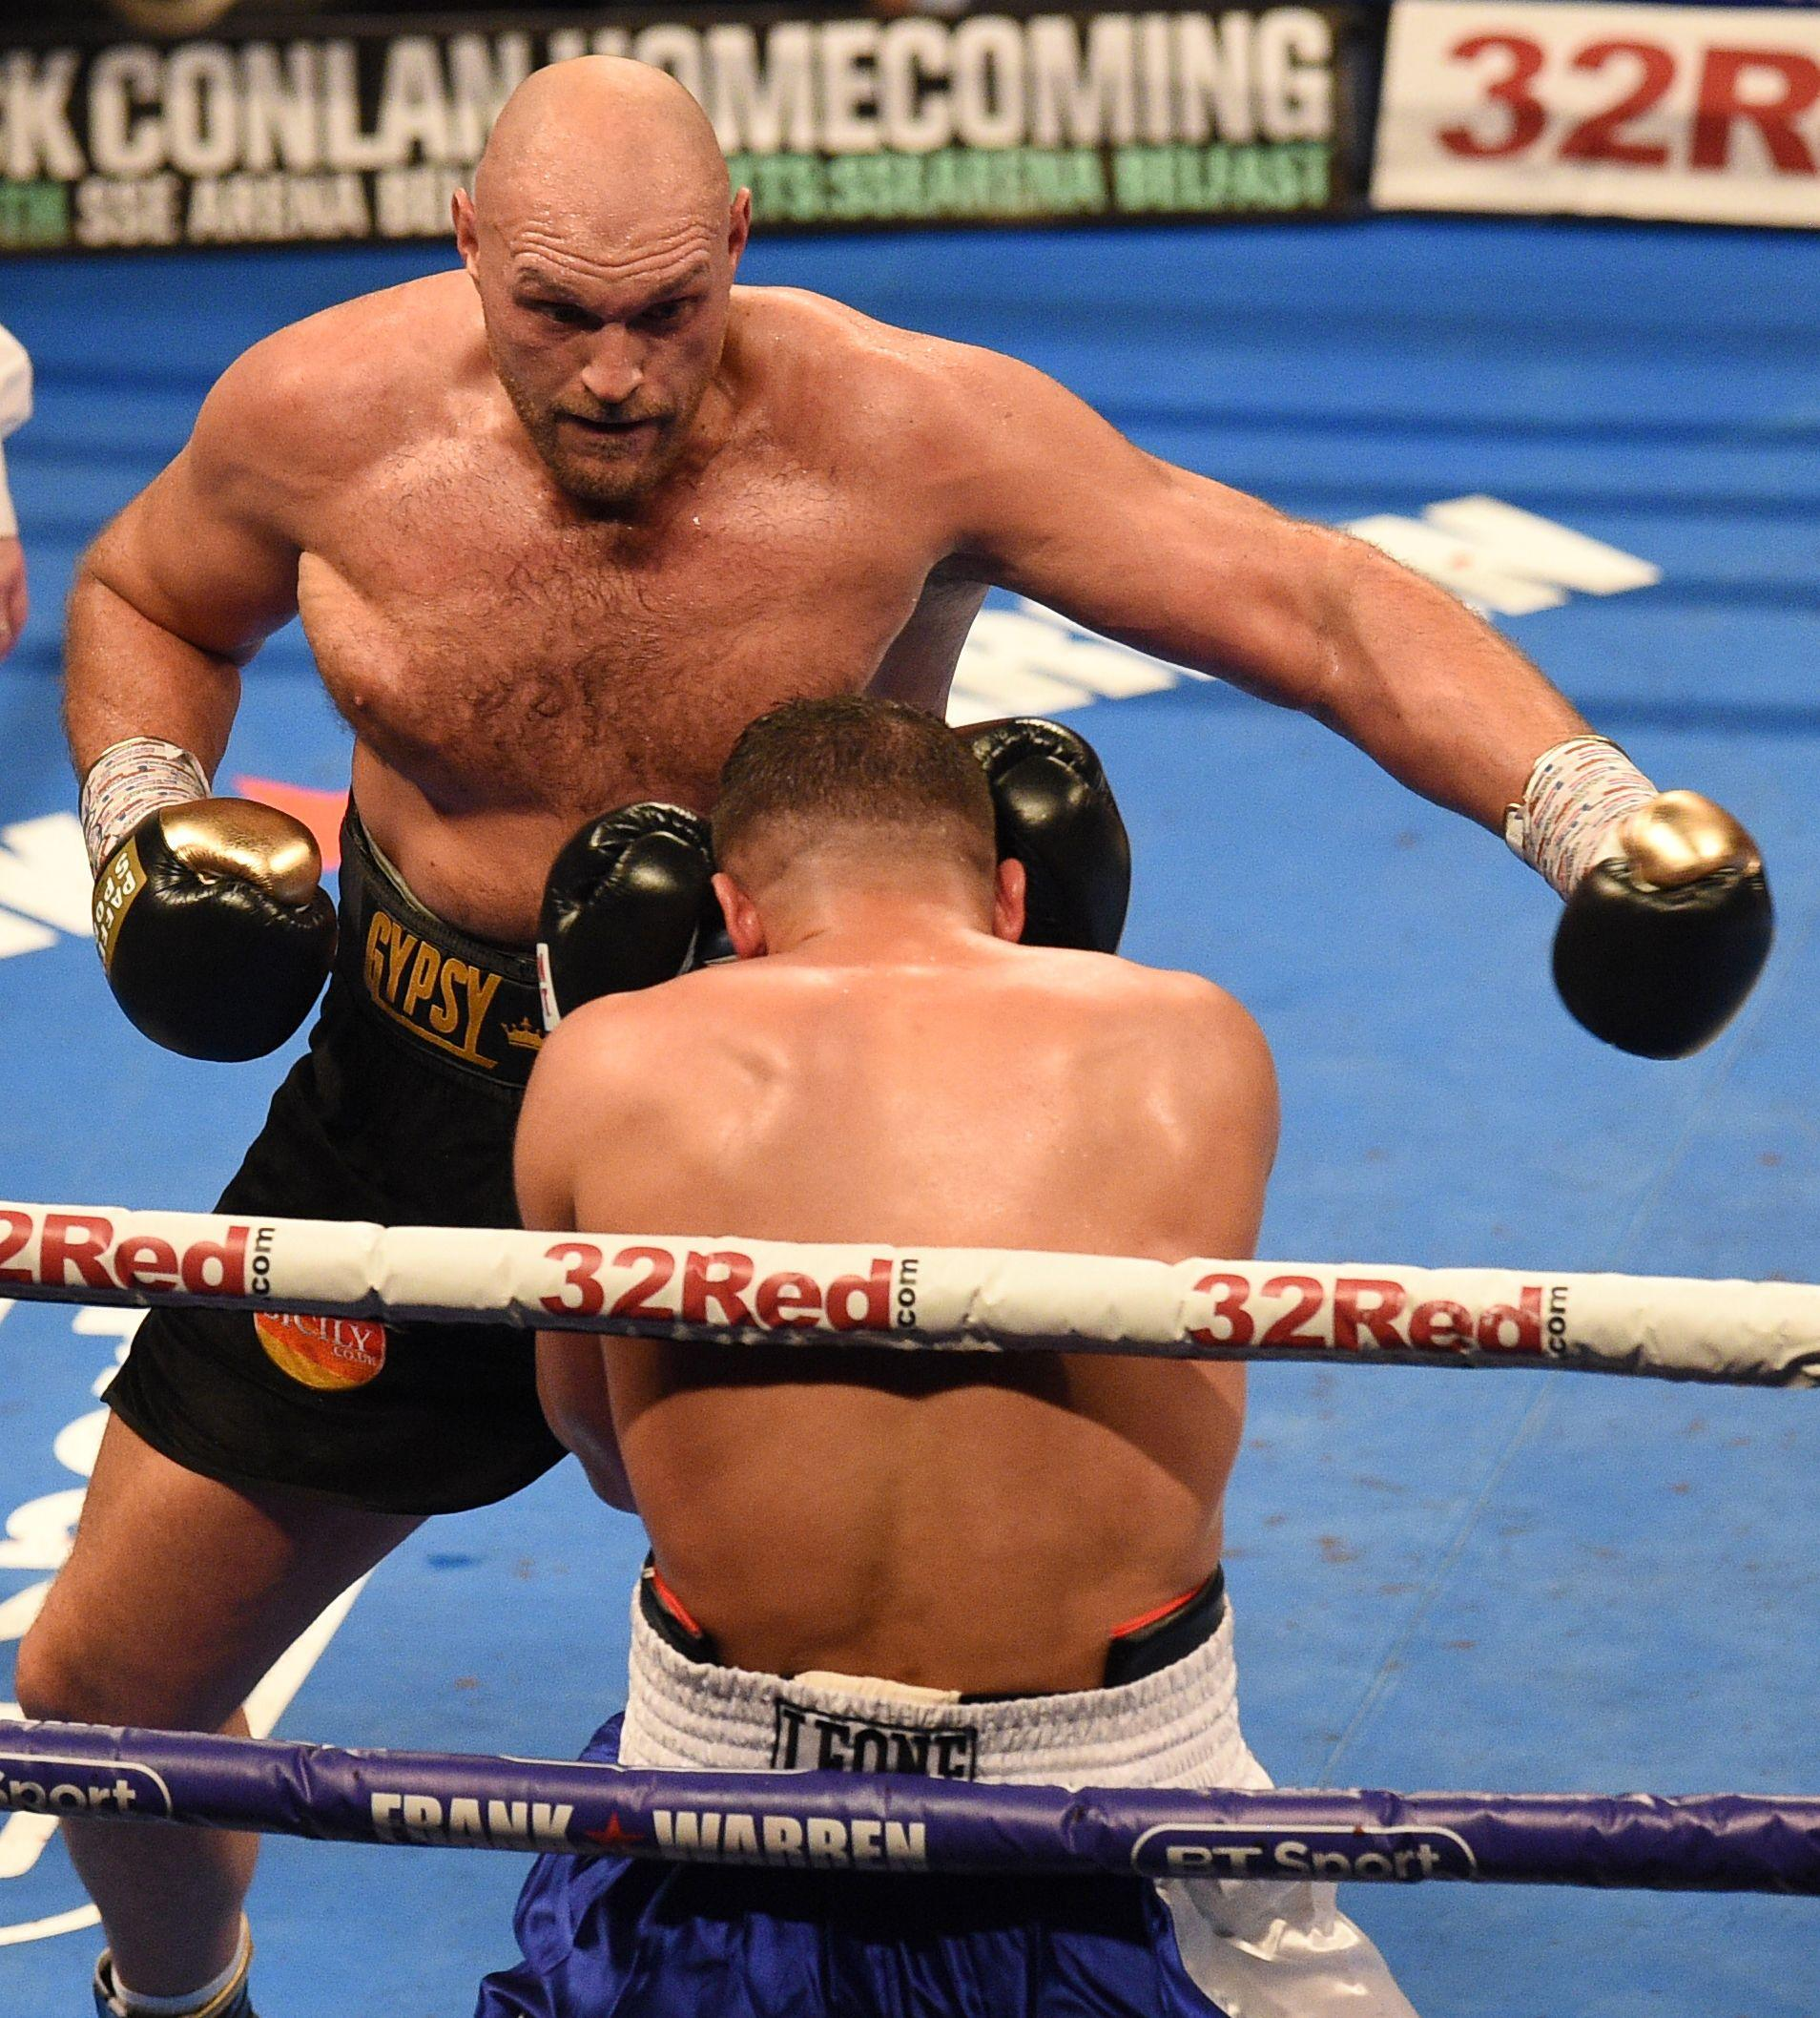 Unbeaten Fury beat Sefer Seferi in his last outing - two-and-half-years after his win over Wladimir Klitschko